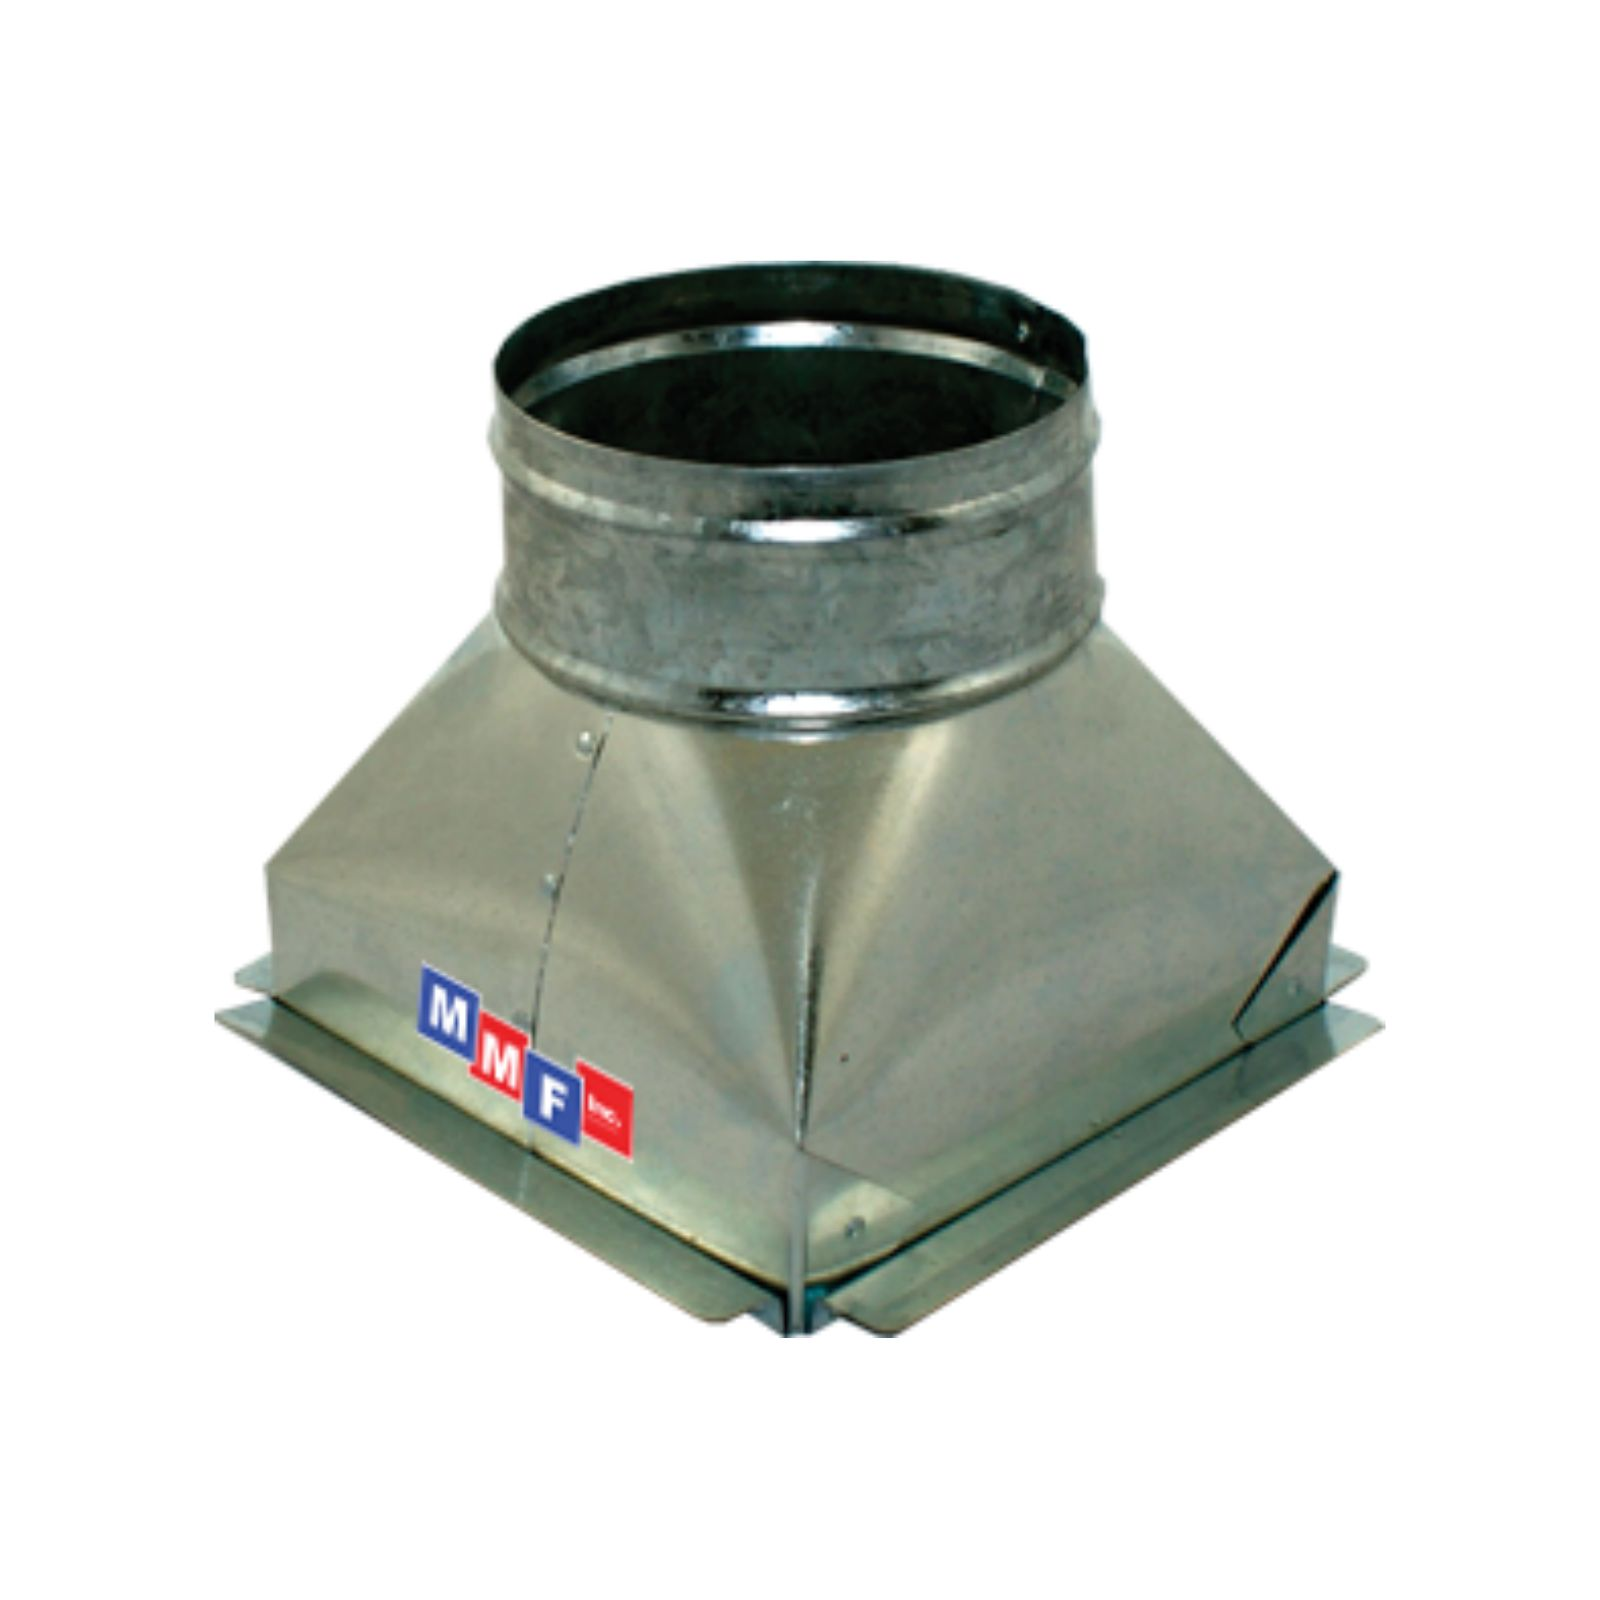 "Modular Metal BTSCG101008P - Sealed Tapered Ceiling Box 10"" X 10"" X 08"" Round - With Plaster Ground Flange - 30 Gauge"